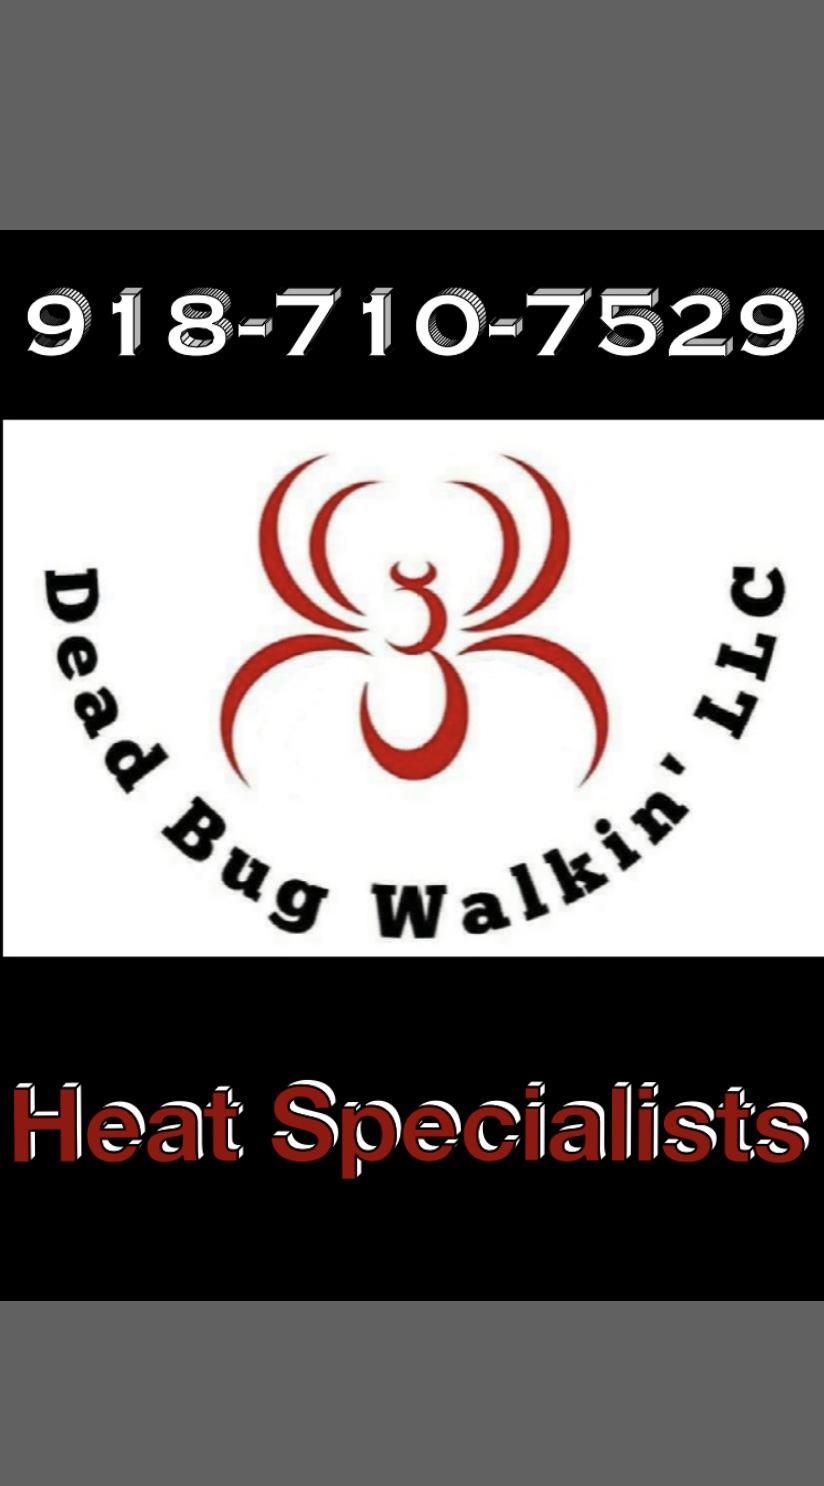 , Oklahoma, Do landlords have to pay for bed bugs?, Dead Bug Walkin LLC